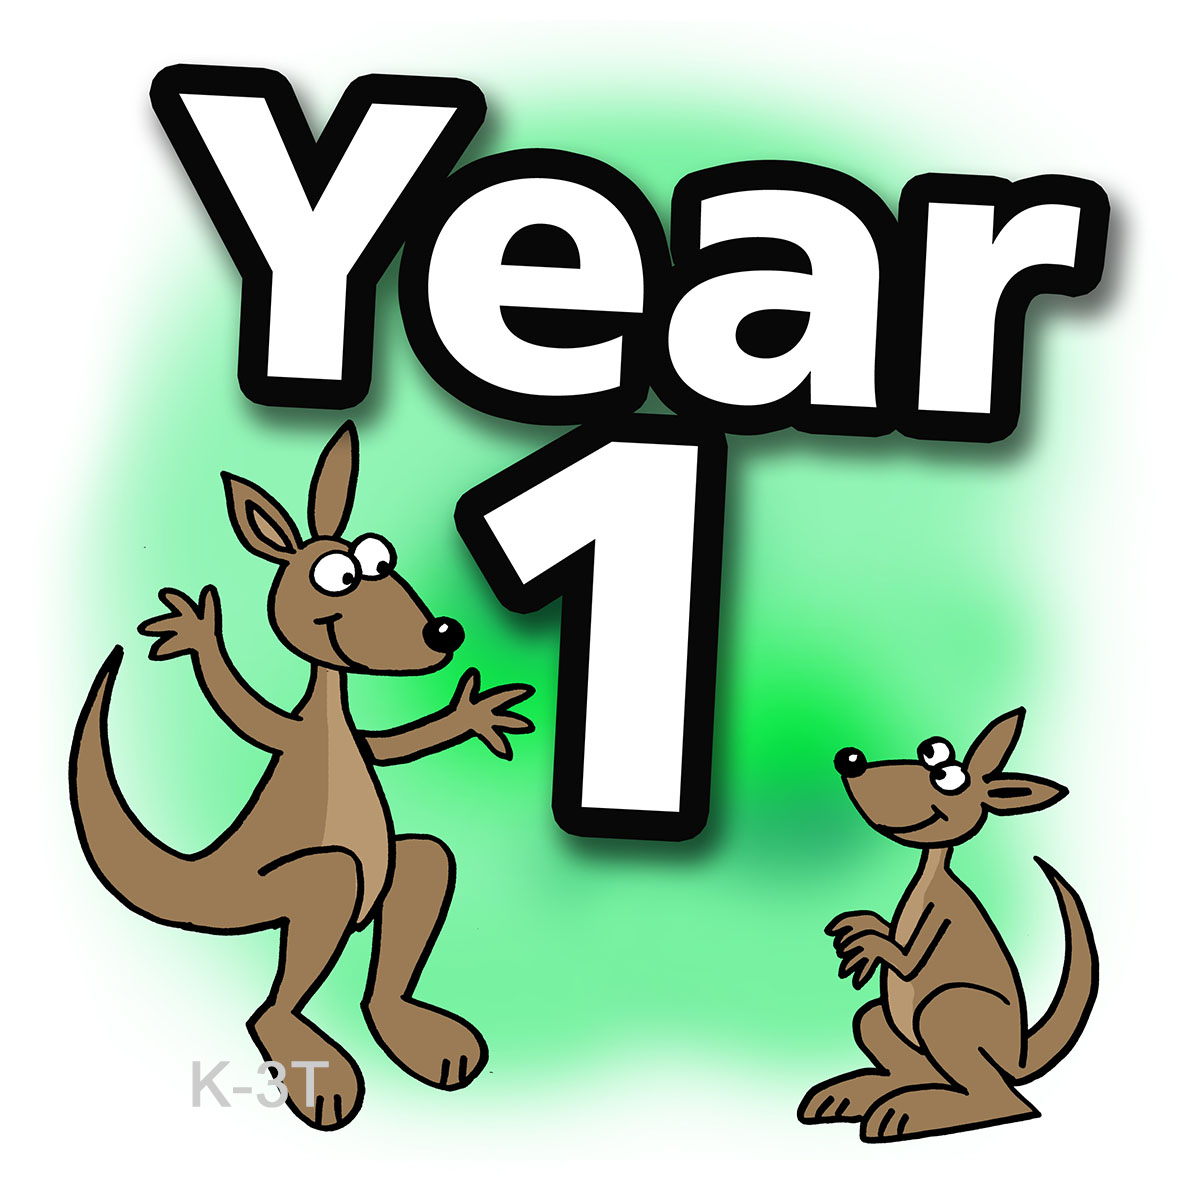 1 year clipart clipart royalty free download 1 Year Clip Art – Clipart Free Download clipart royalty free download